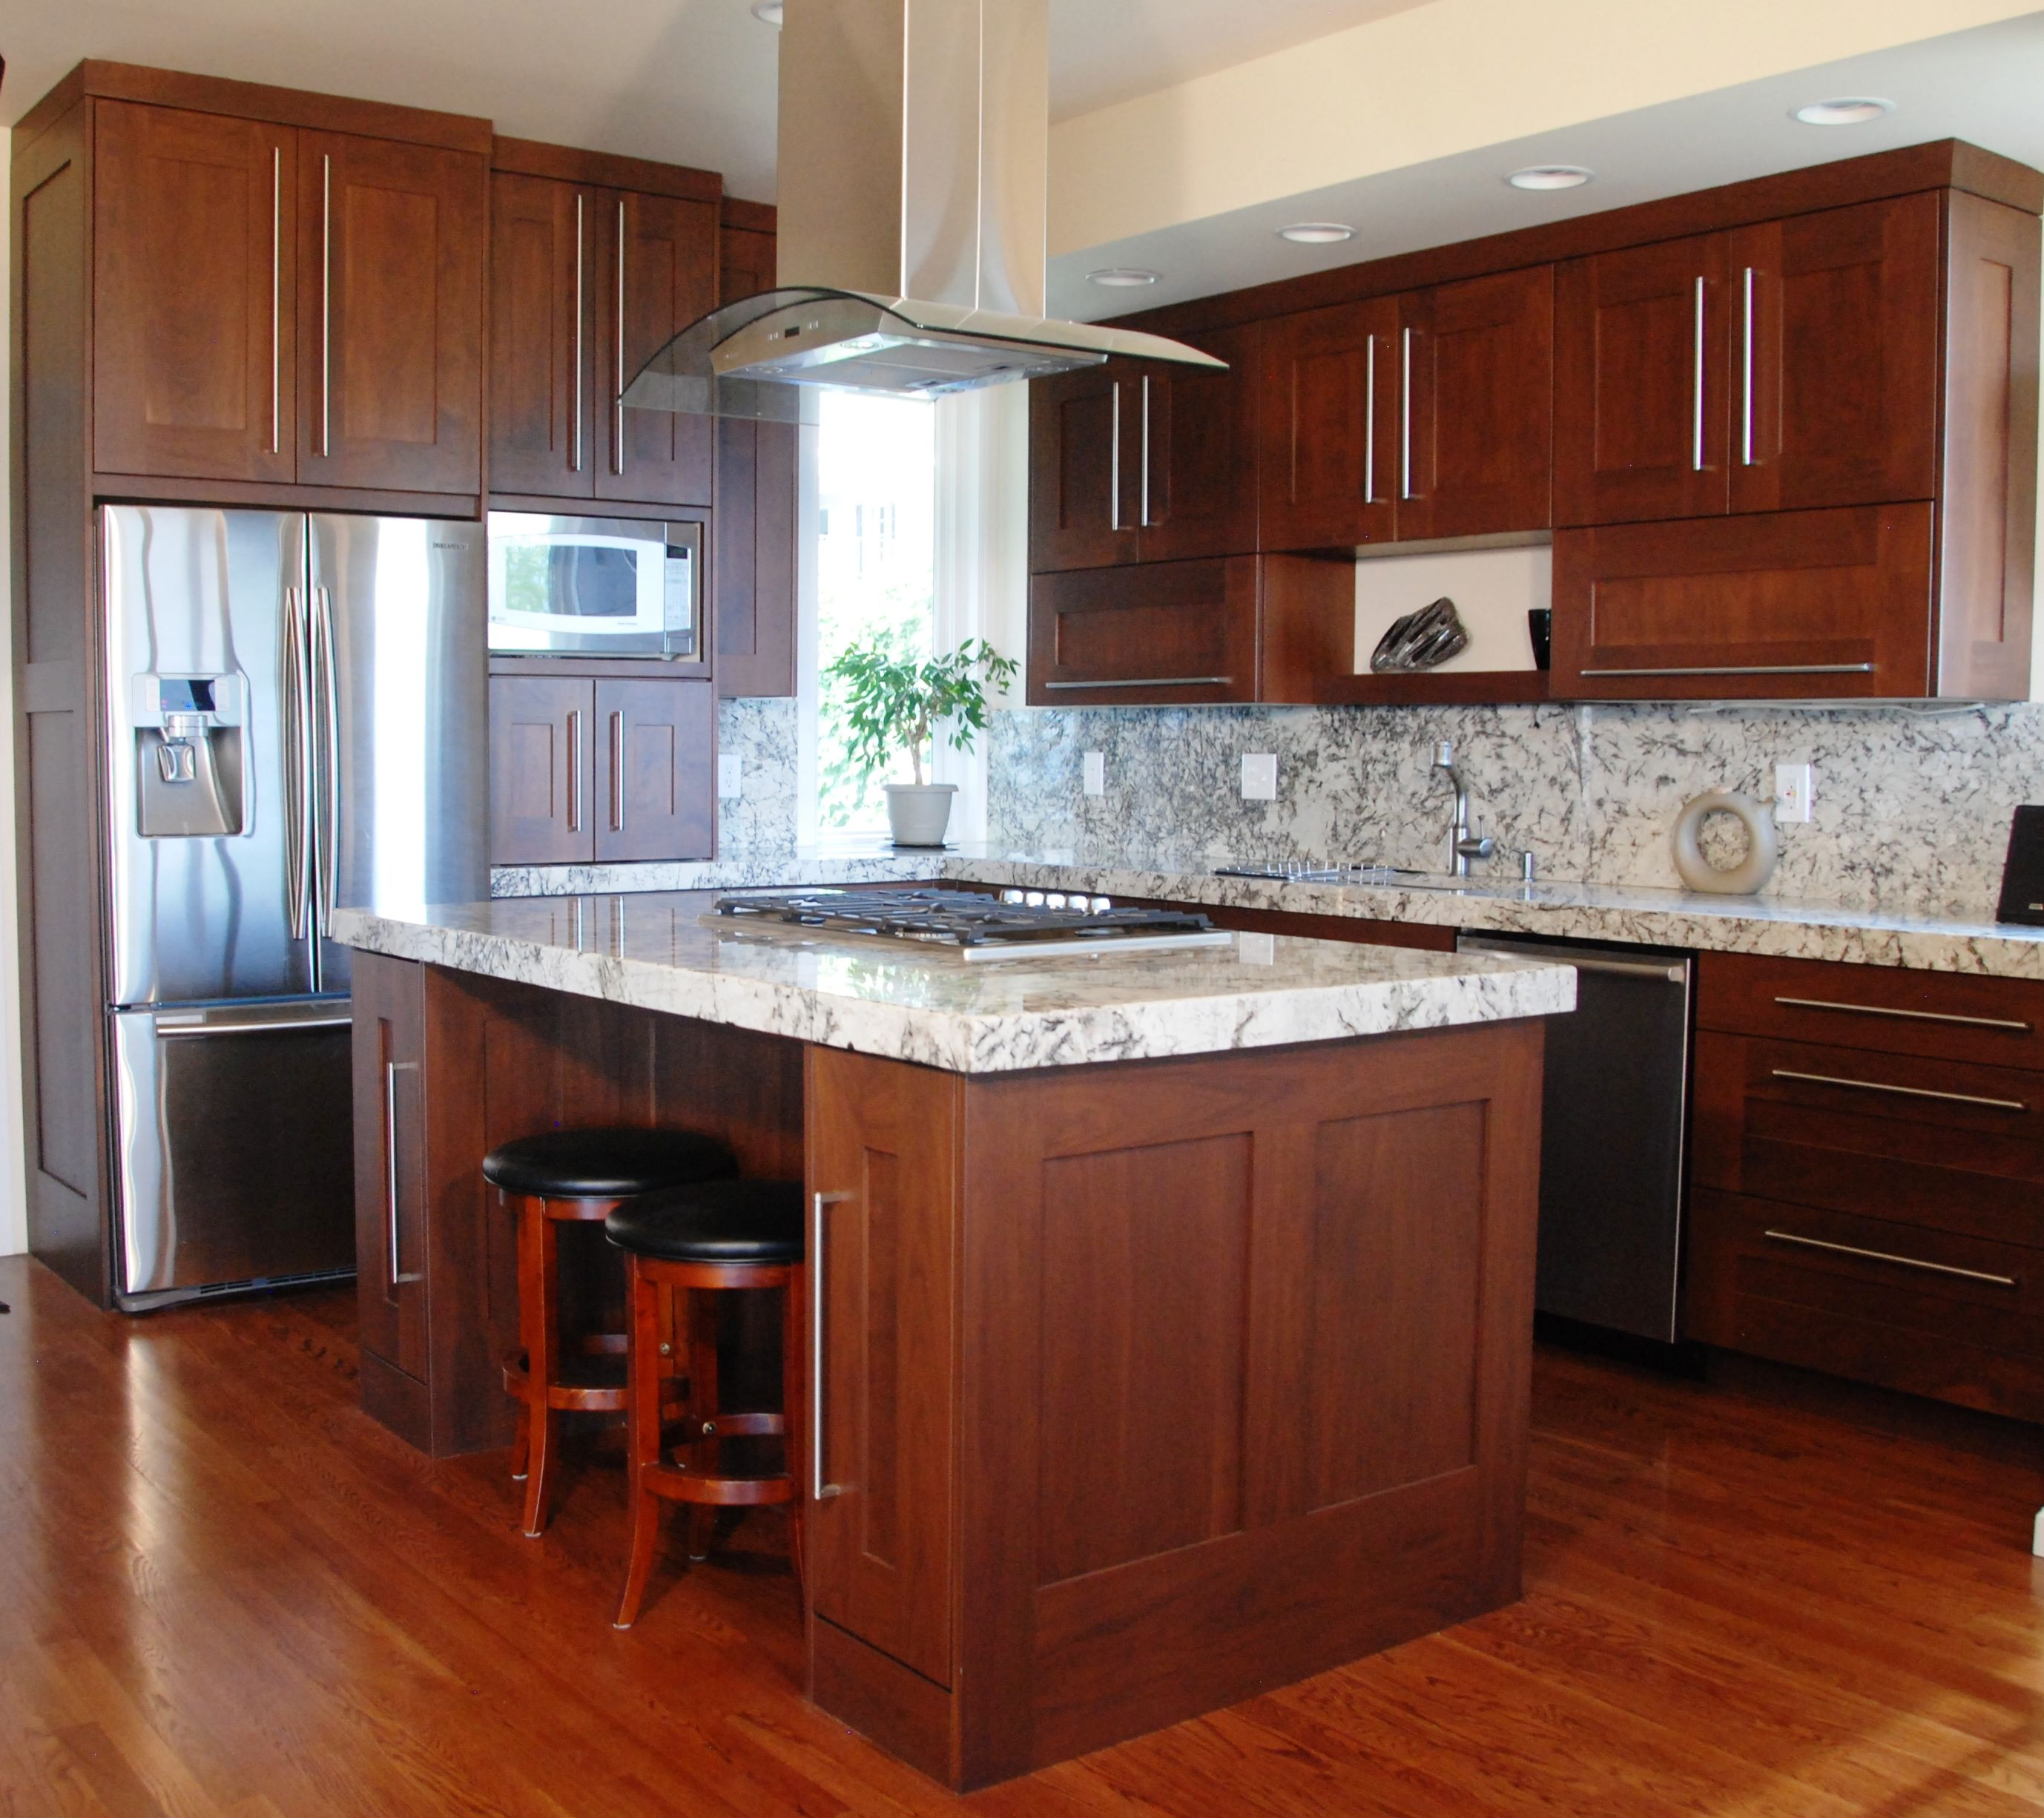 White Painted Wood Floor With Modern Cabinetry: In Modern Kitchen Designs, White Or Gray Painted Shaker